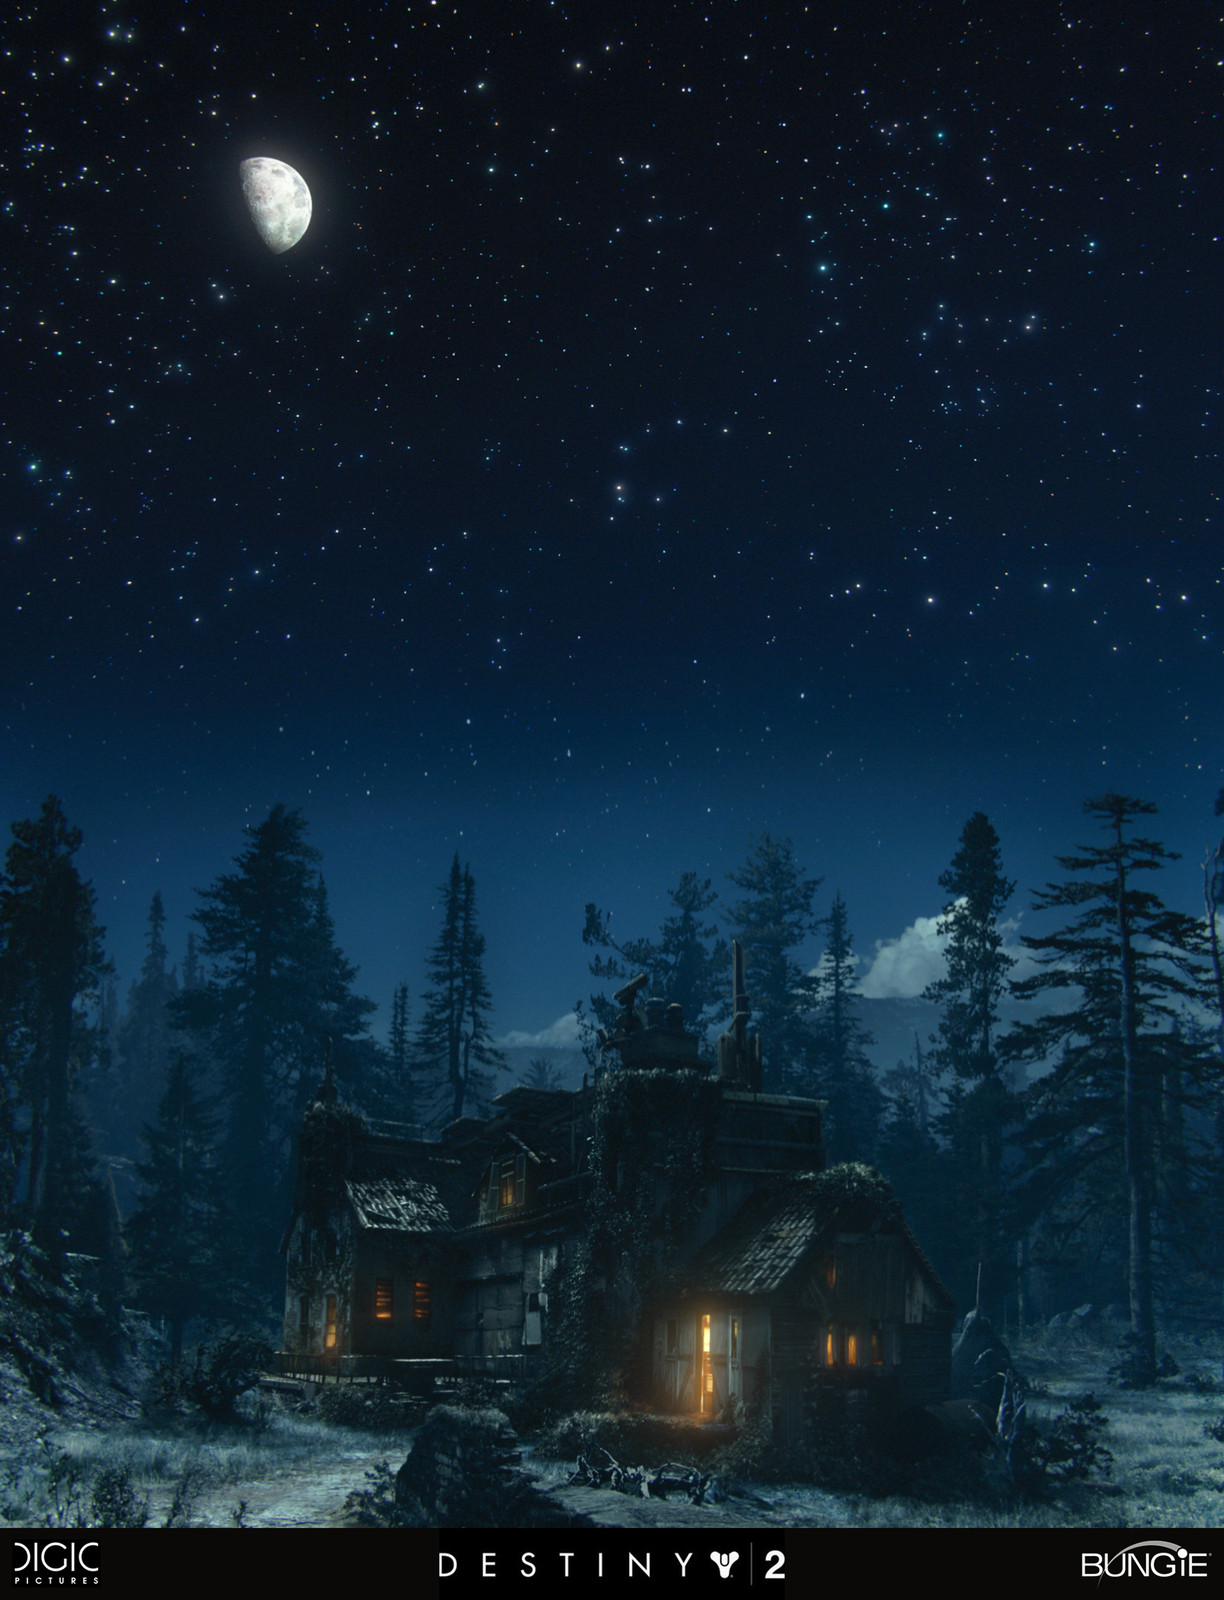 graded matte painting